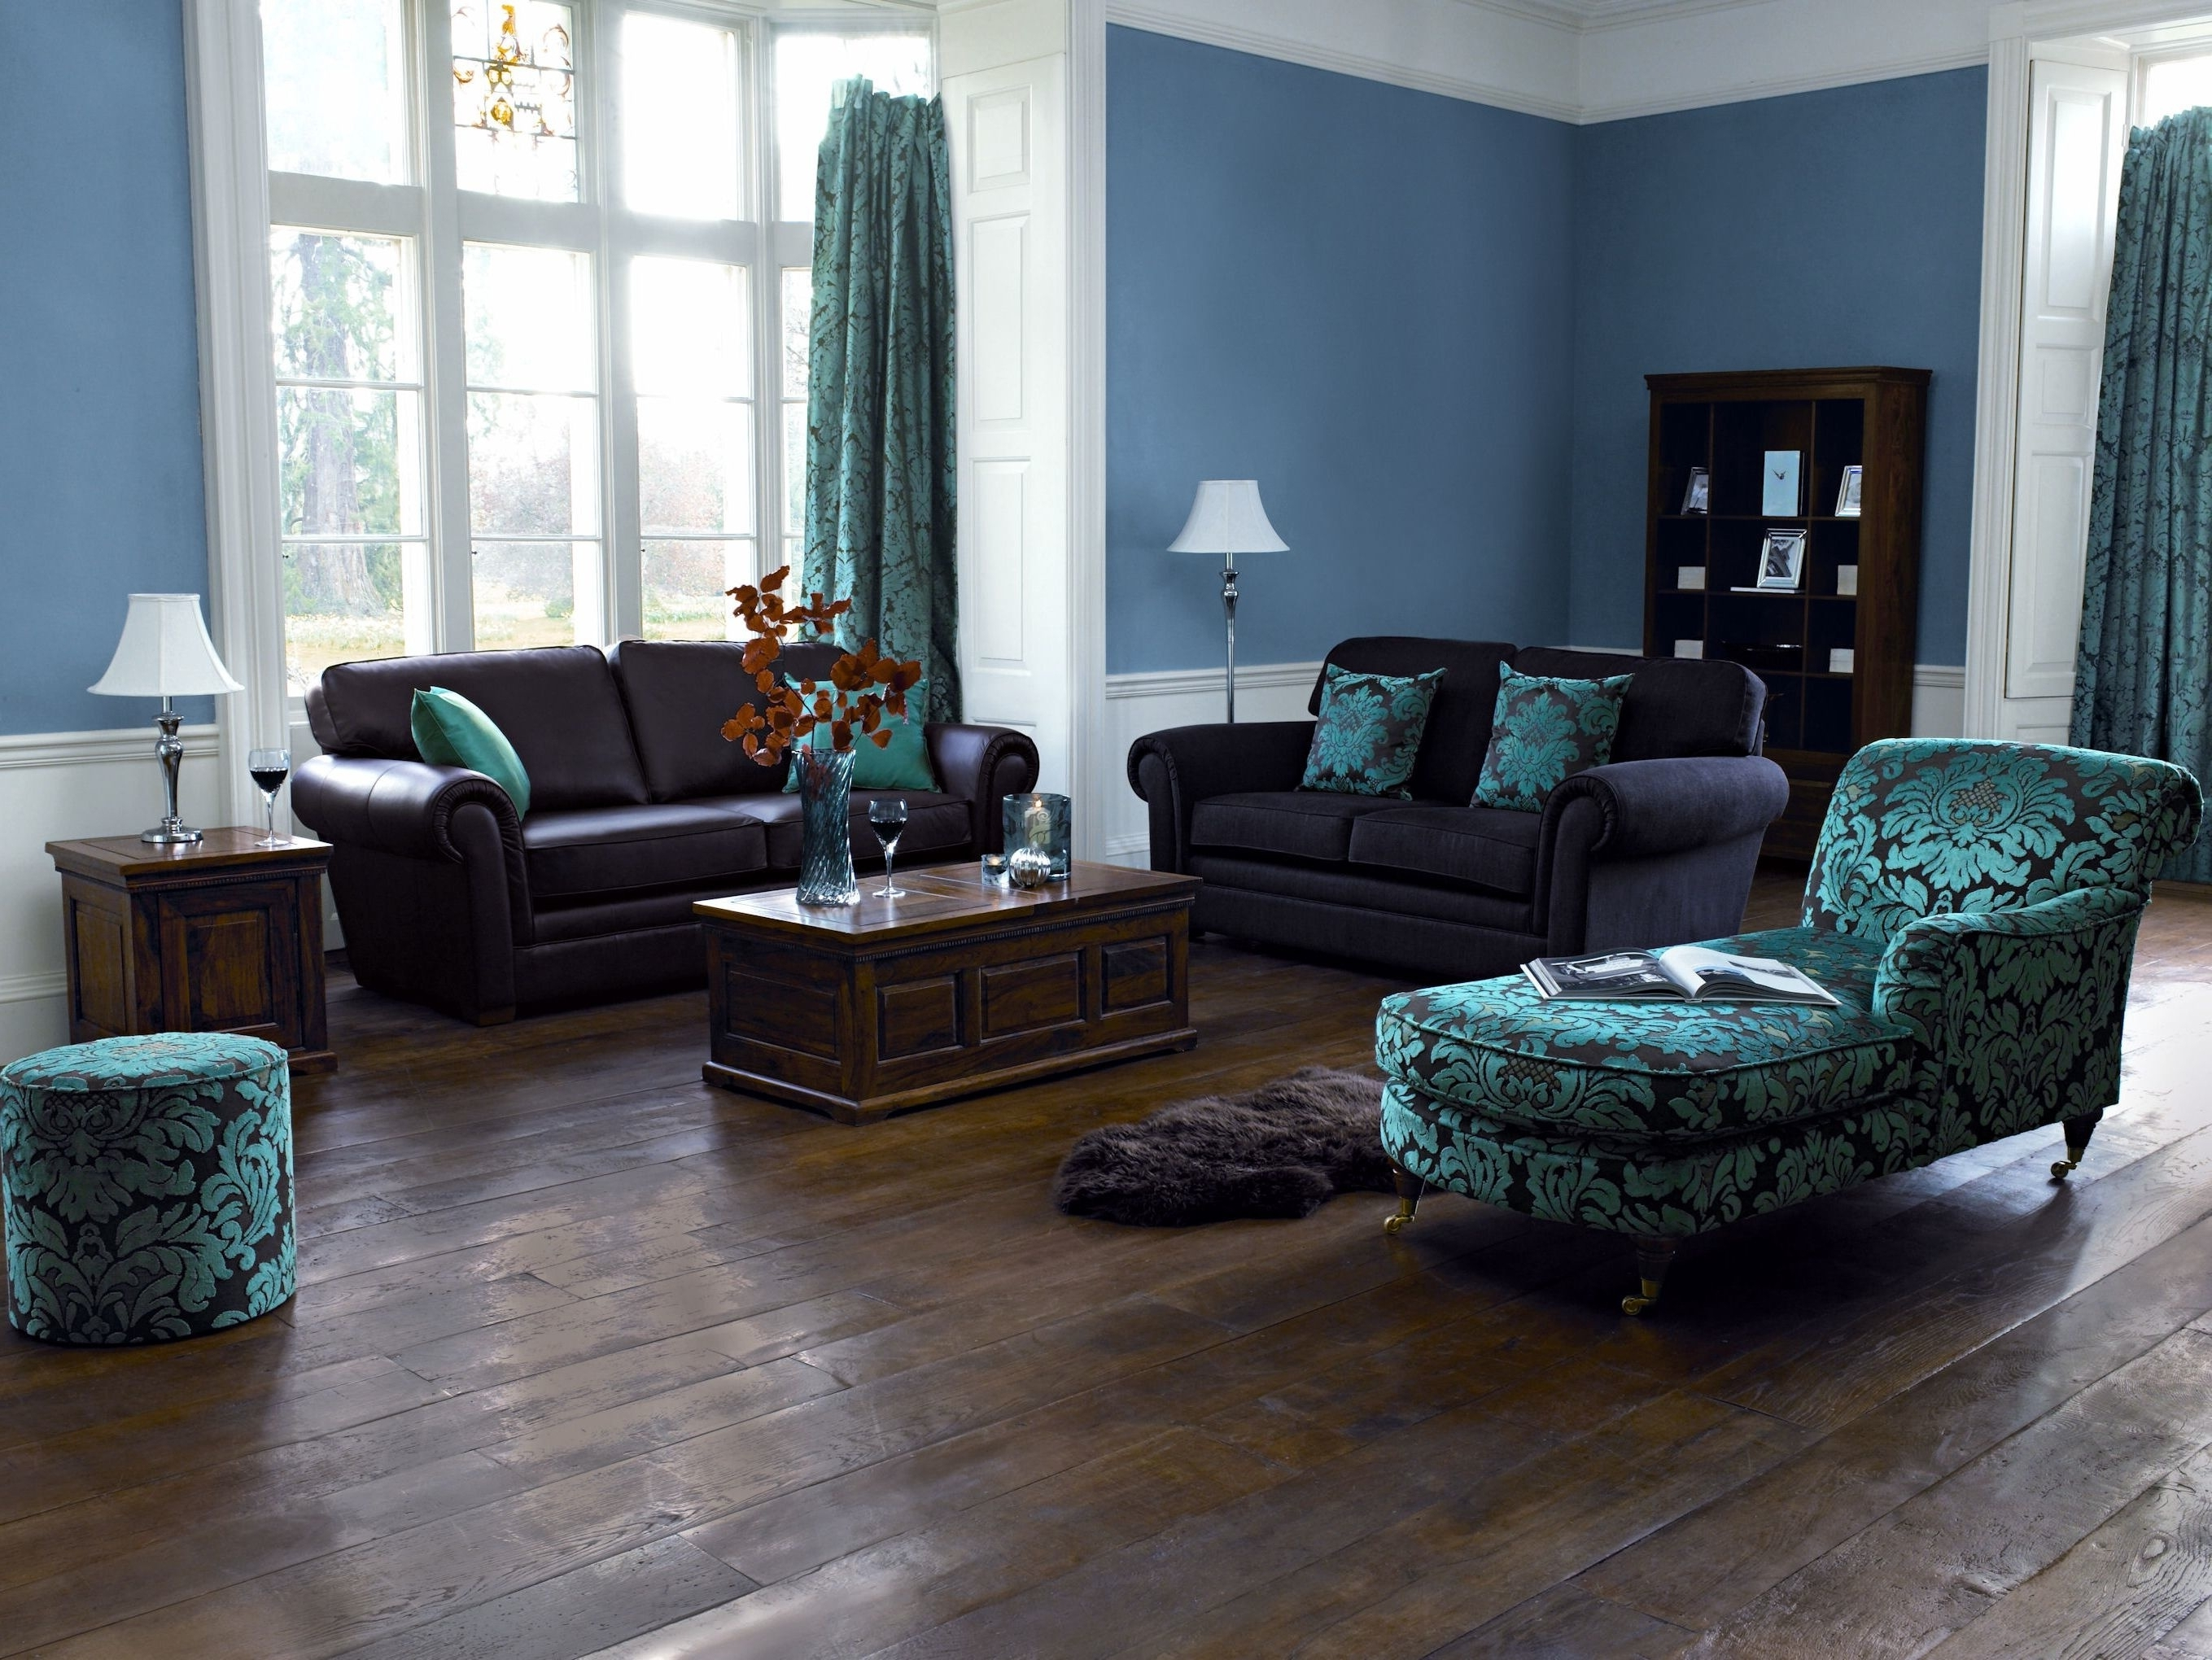 Chaise Lounges For Living Room Regarding Latest Luxury Chaise Lounge Chairs For Living Room X1 # (View 5 of 15)